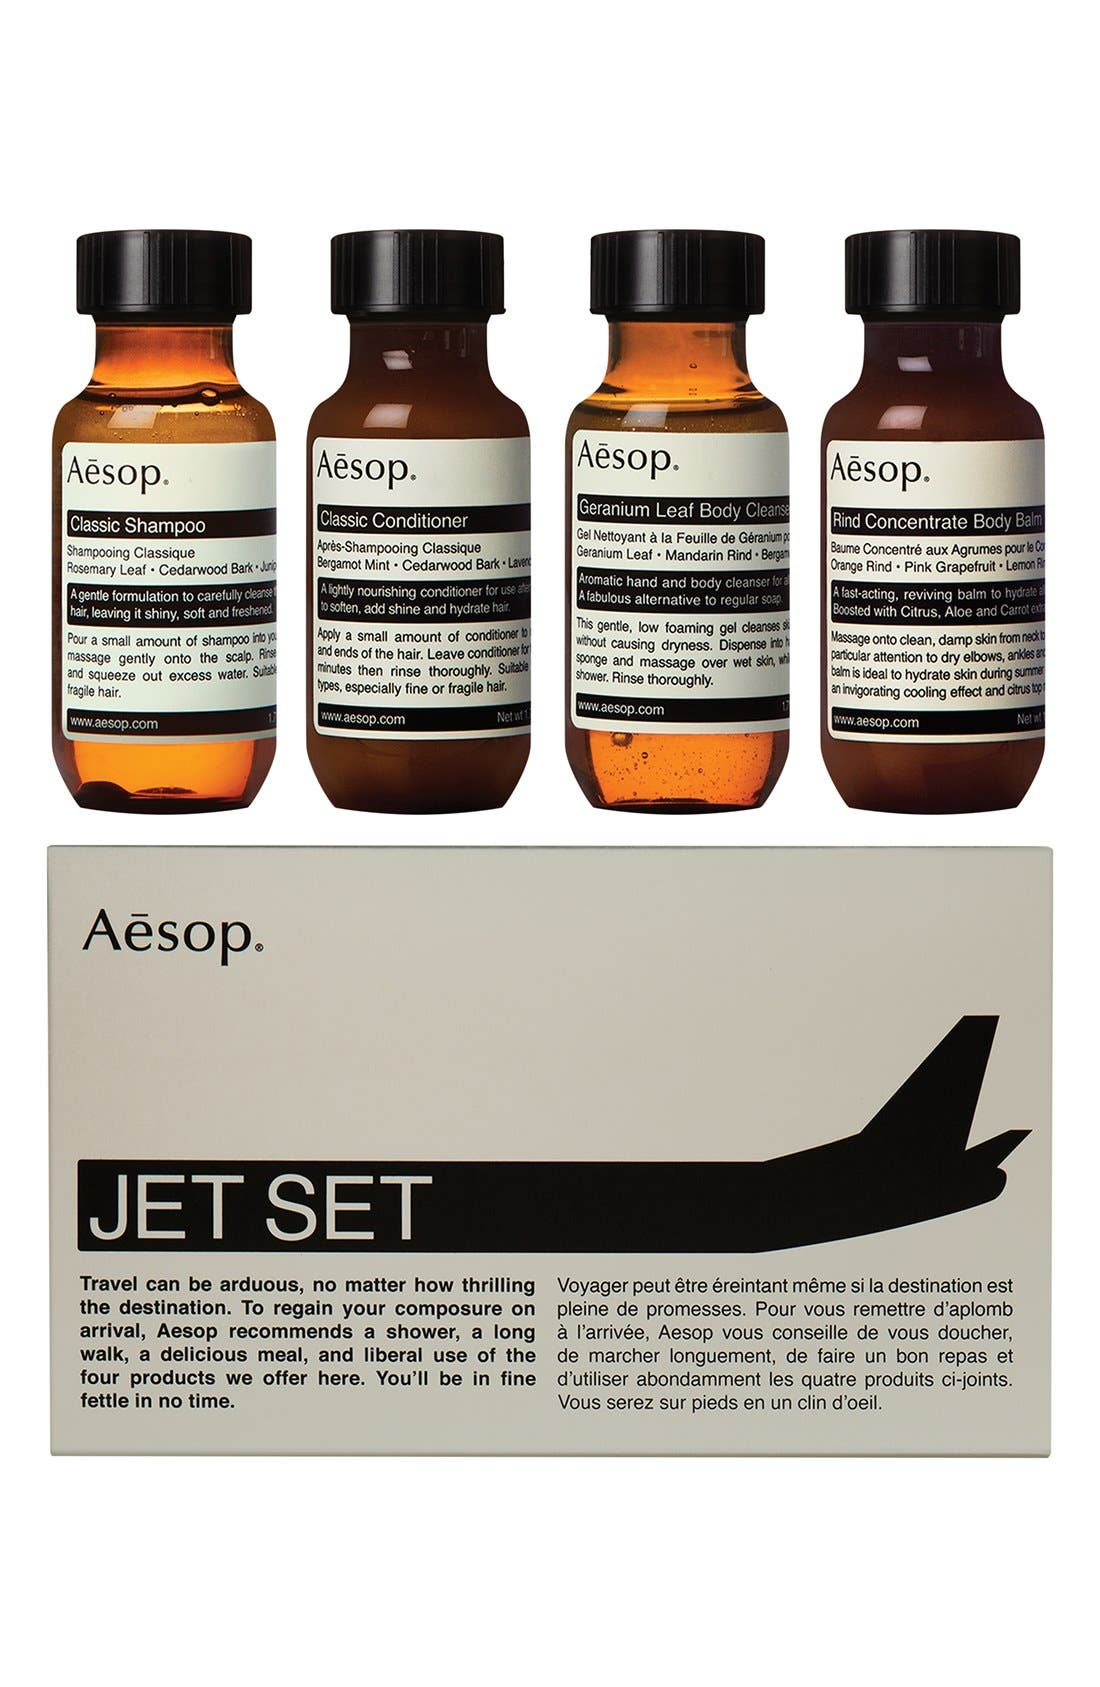 Aesop Jet Set Travel Kit